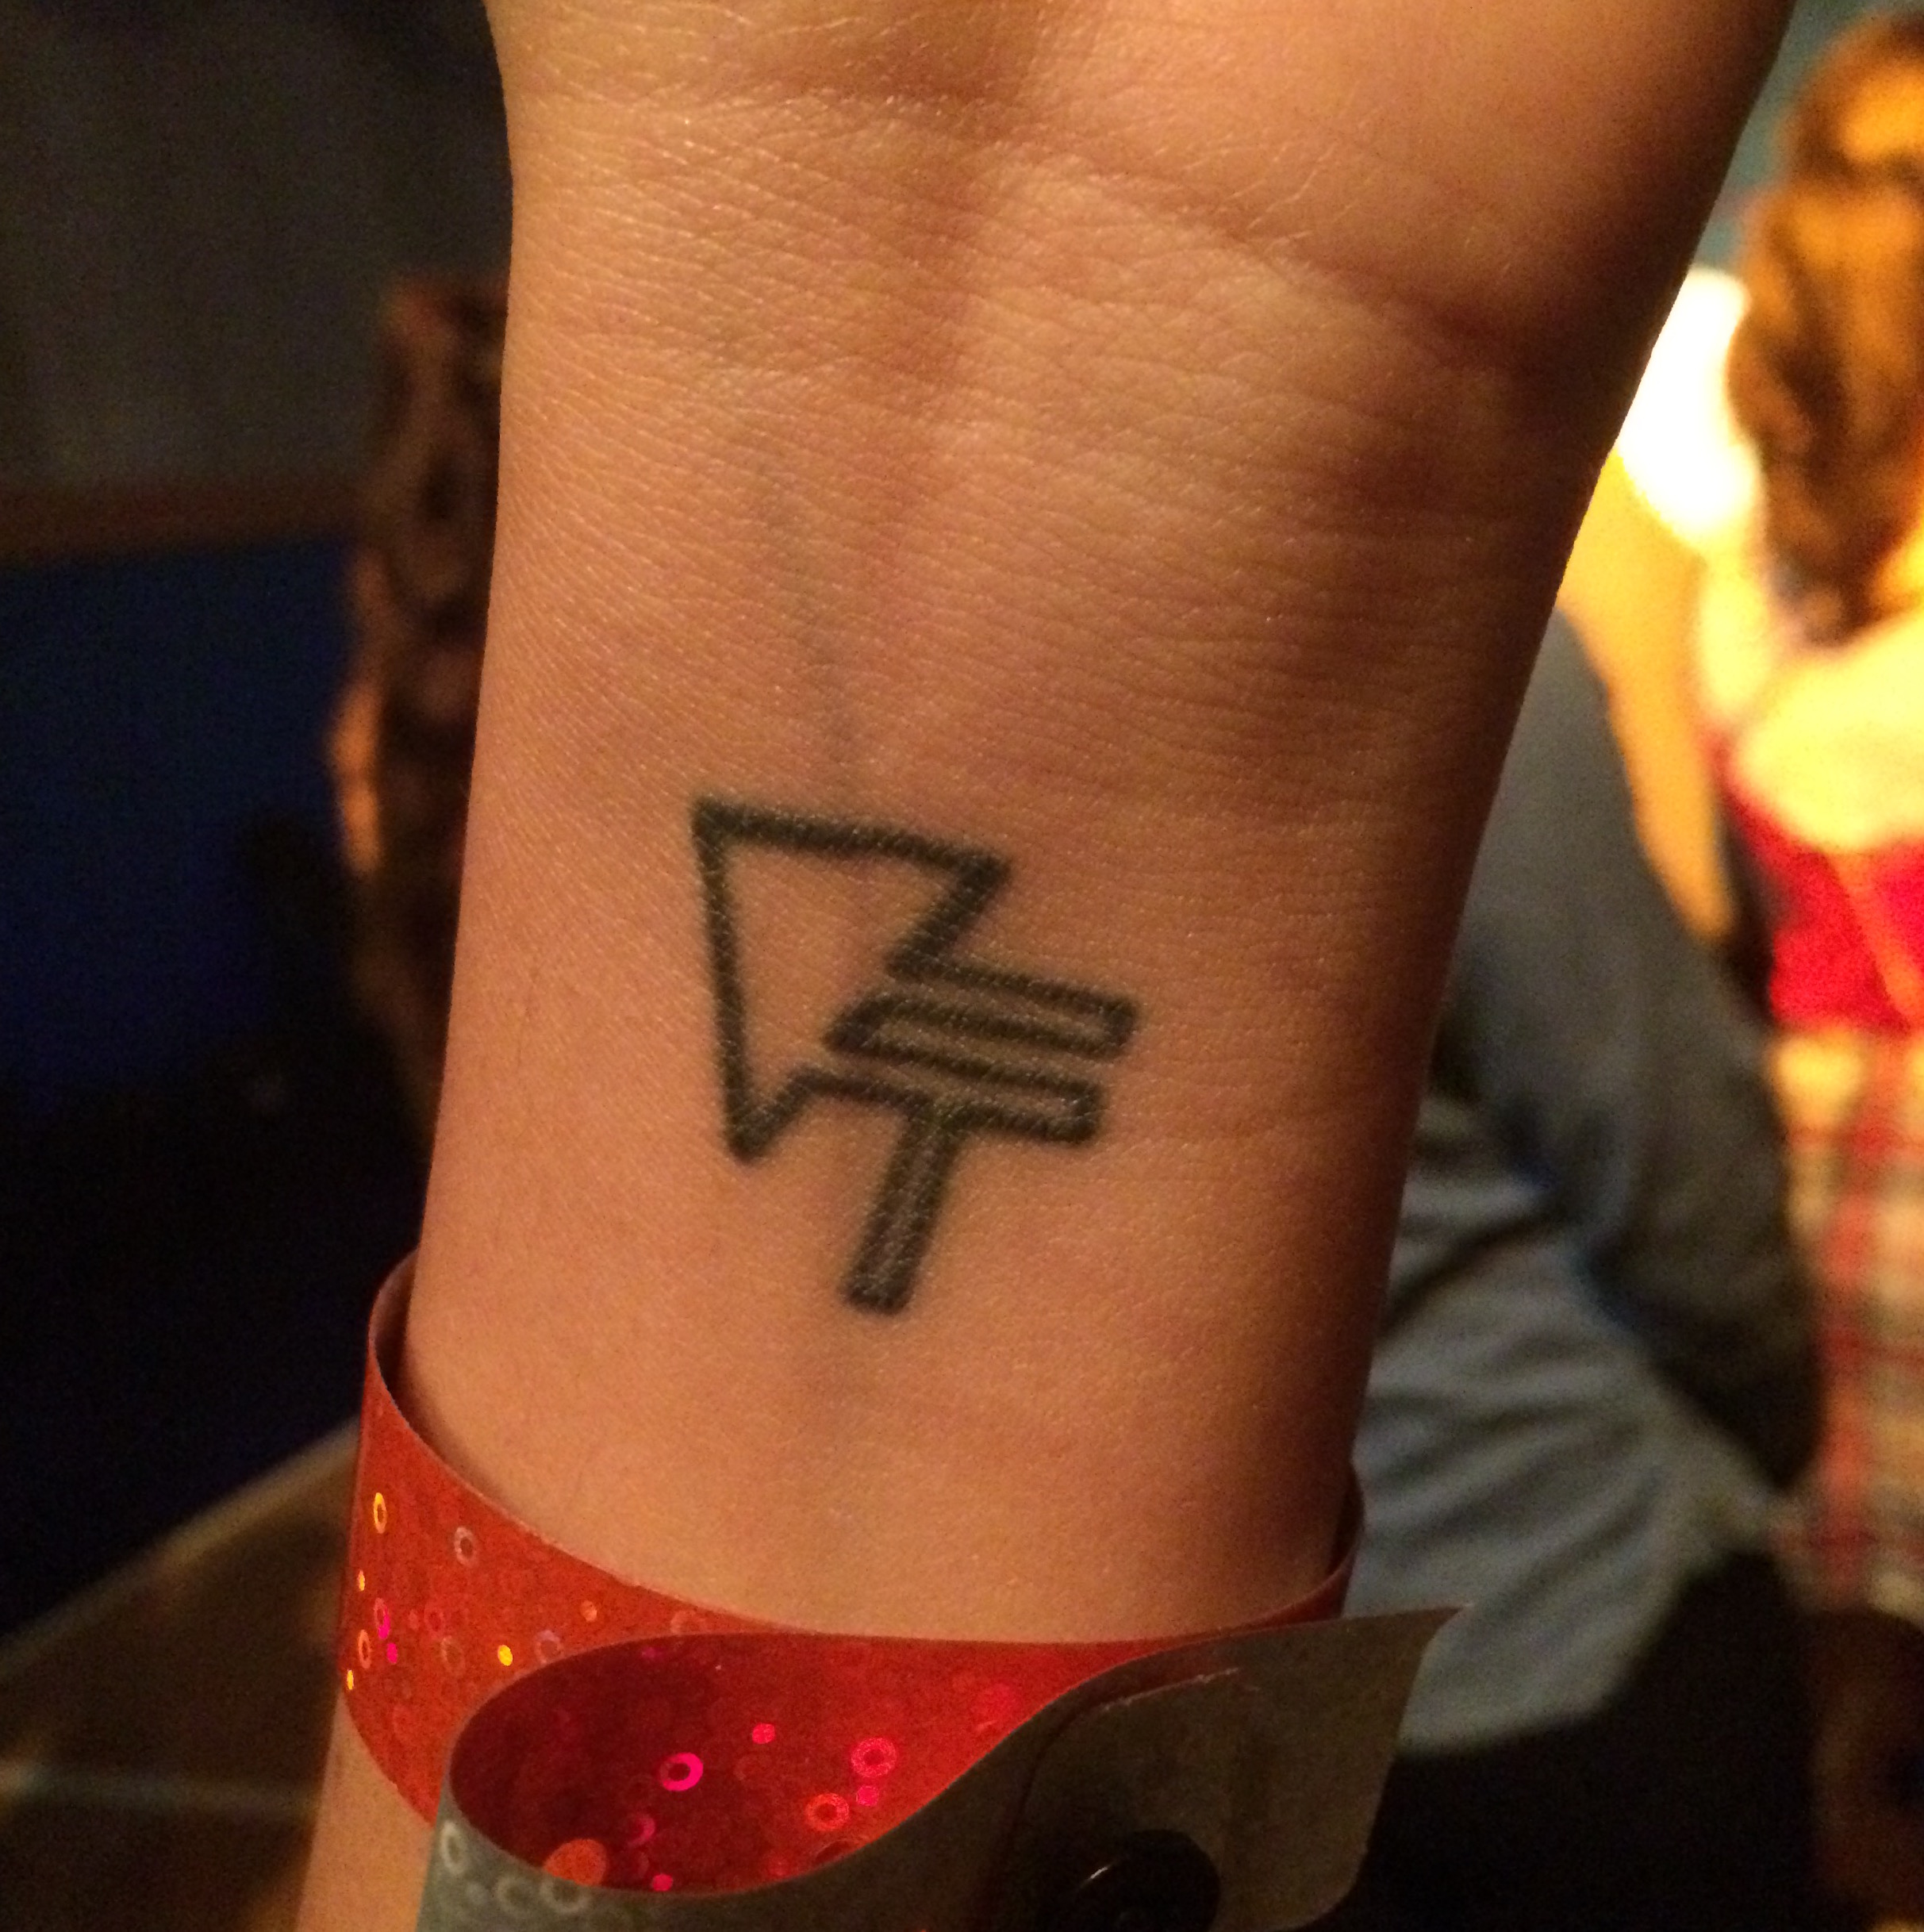 Victoria Fortune, who flew from Texas to see the show on Saturday, fell in love with Vinyl Theatre in 2014 and got their logo tattooed on her wrist. Photo by Jennifer Walter jennifer.walter@marquette.edu